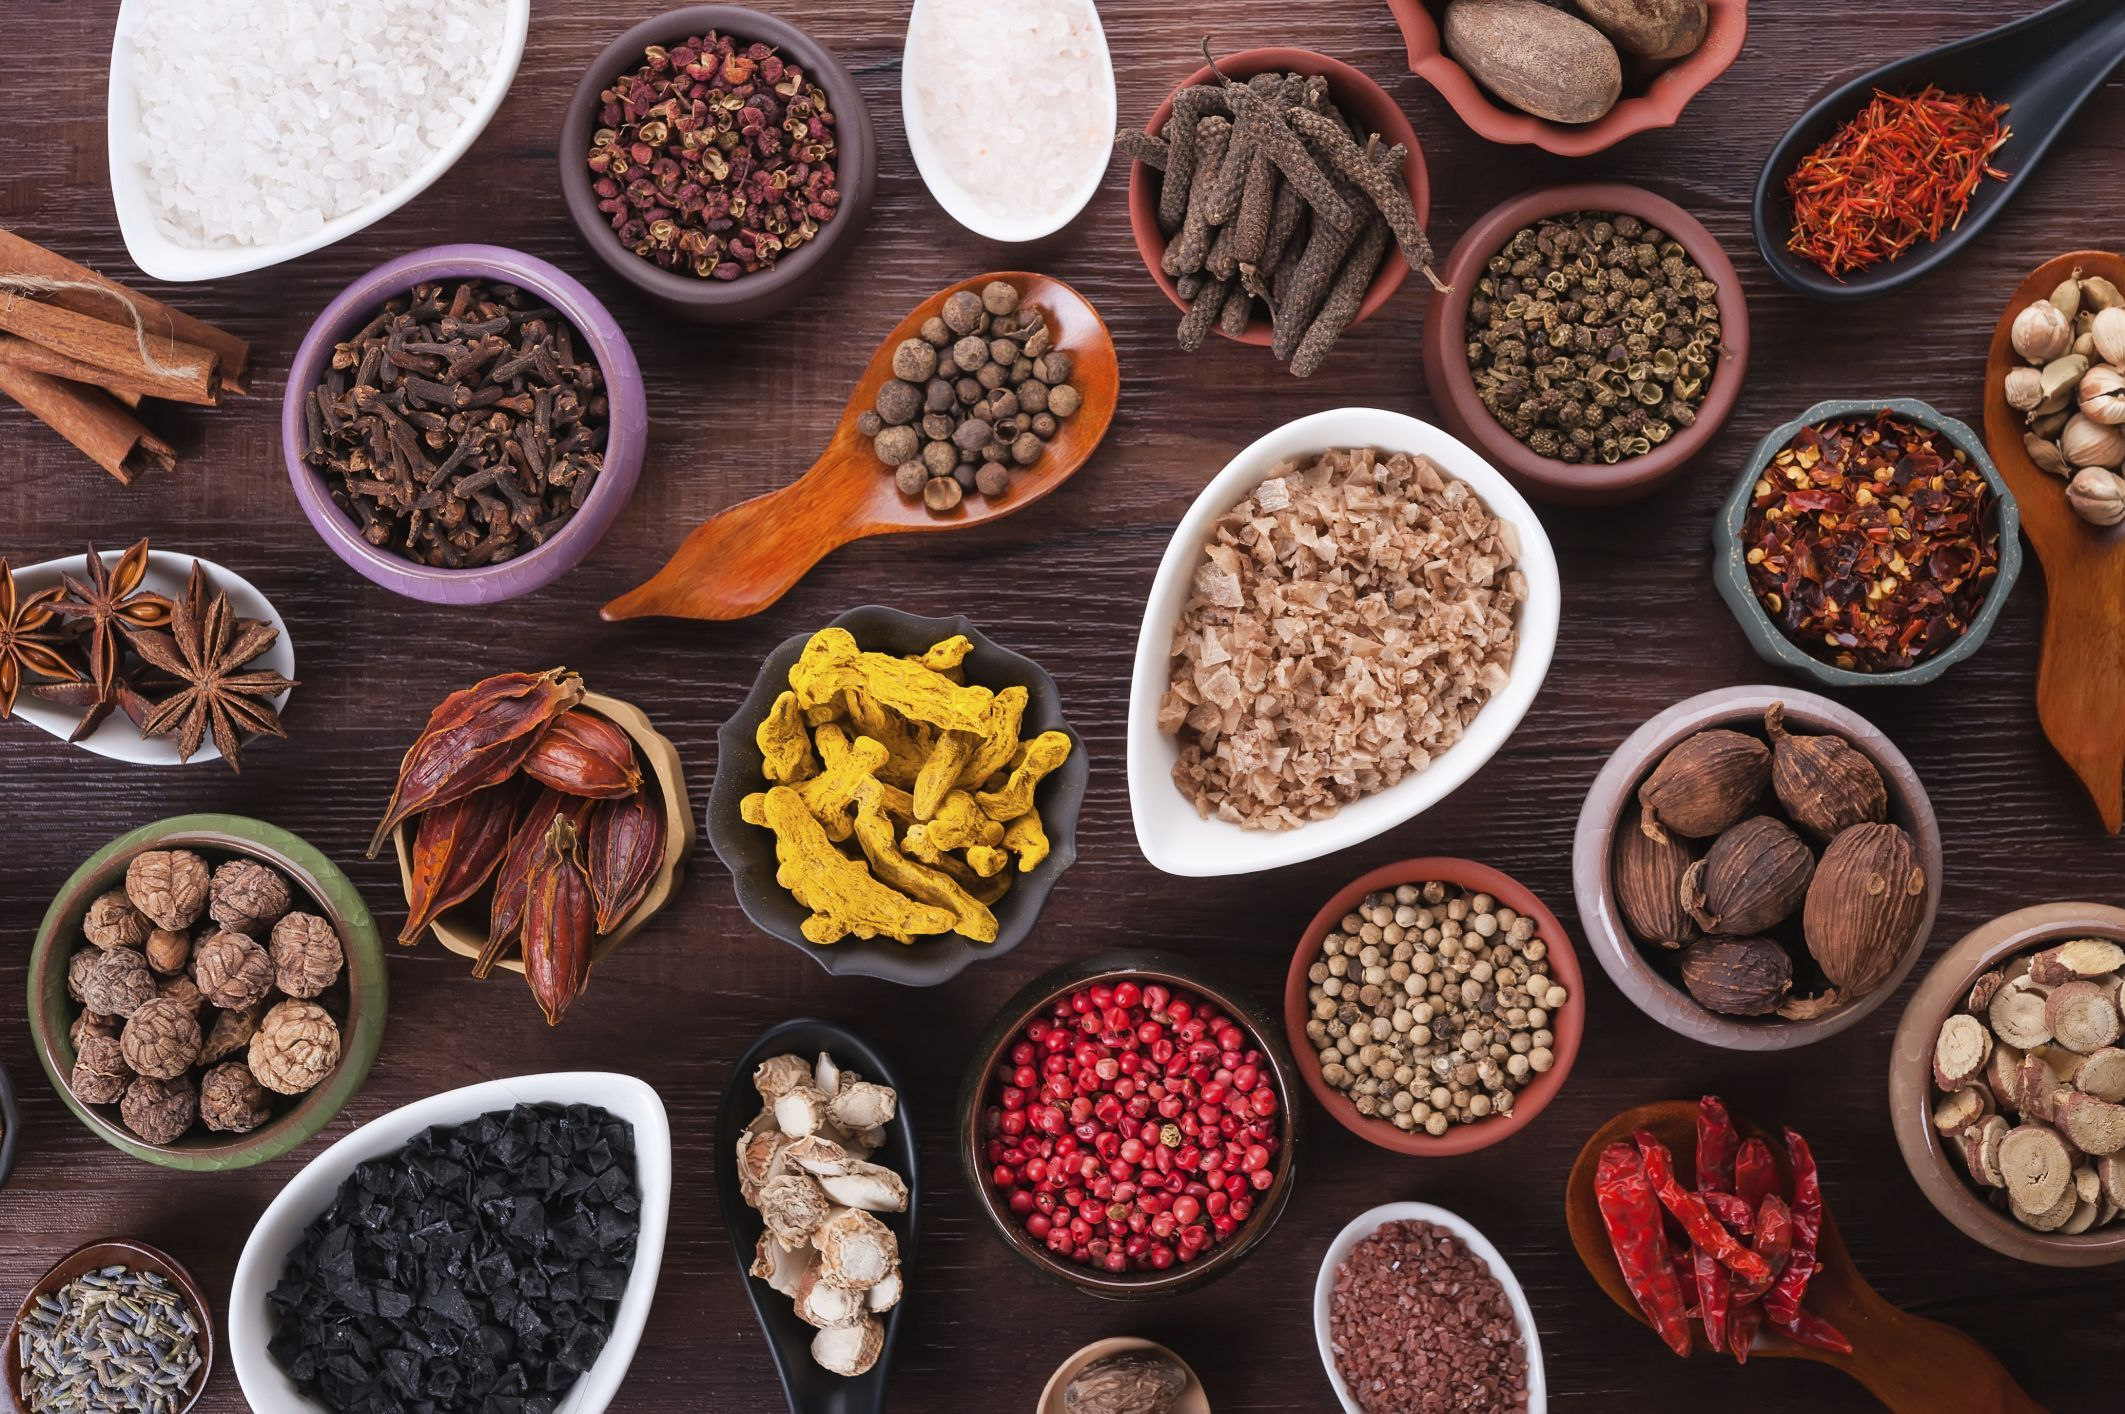 7-ingredientes-que-encontraras-en-una-cocina-china_0